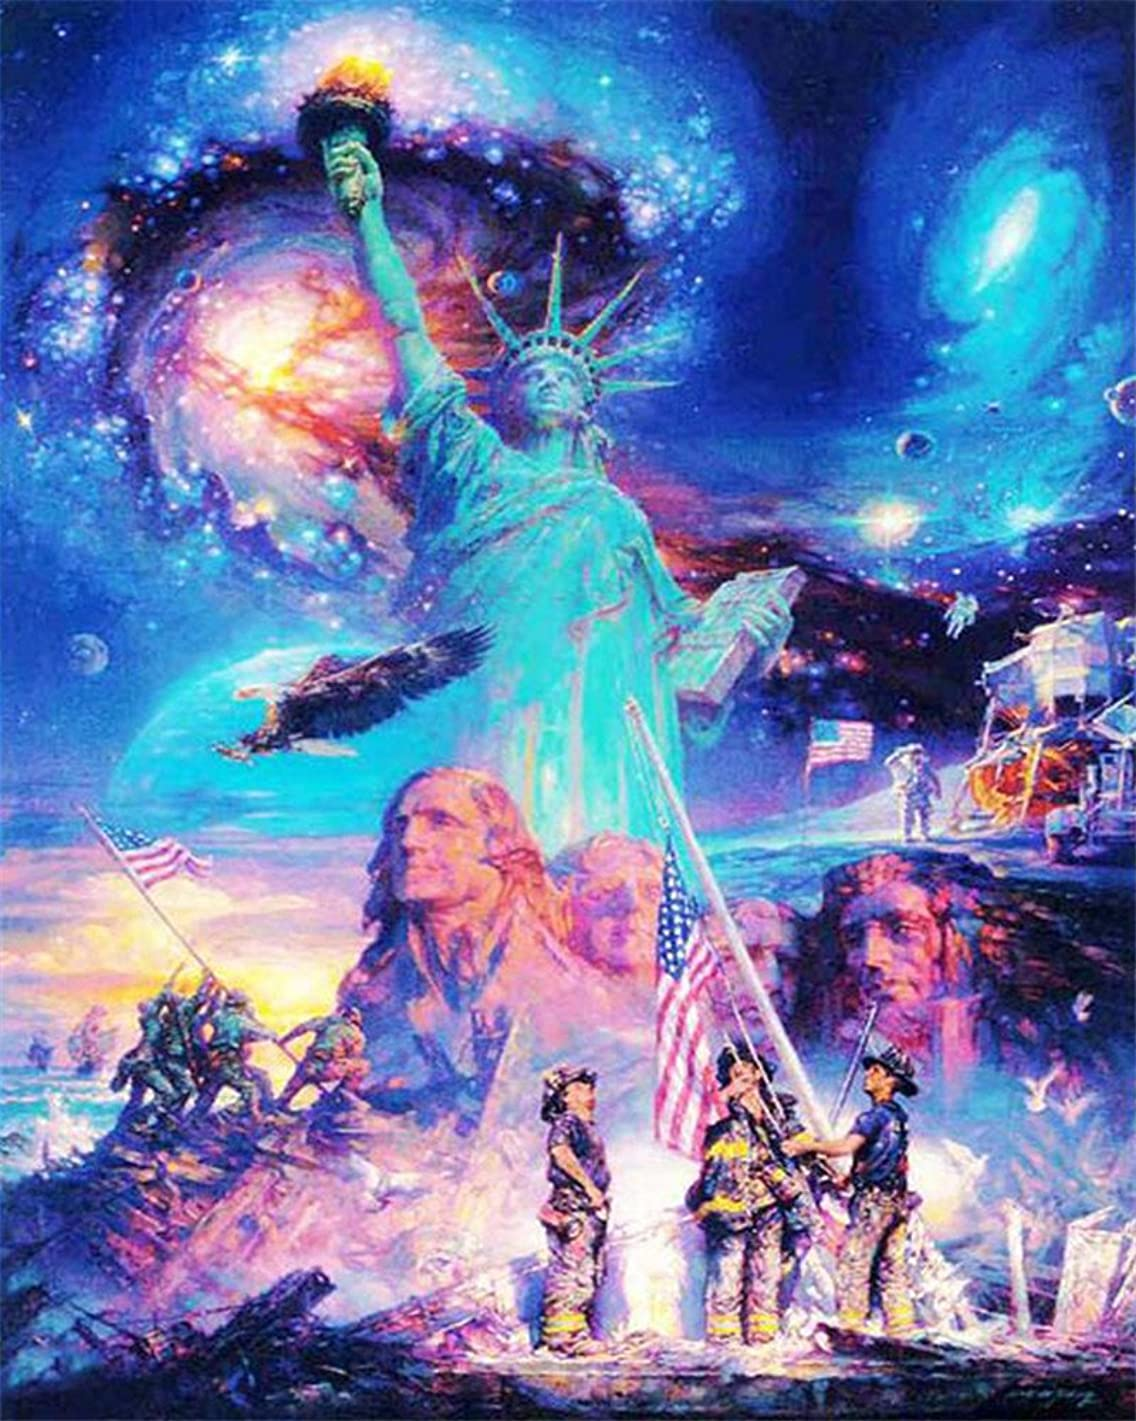 CaptainCrafts Diy 5D Diamond Painting by Number Kits Full Drill Diamond Painting - Starry Sky Statue Of Liberty Sculpture (20X25cm/8X10inch)